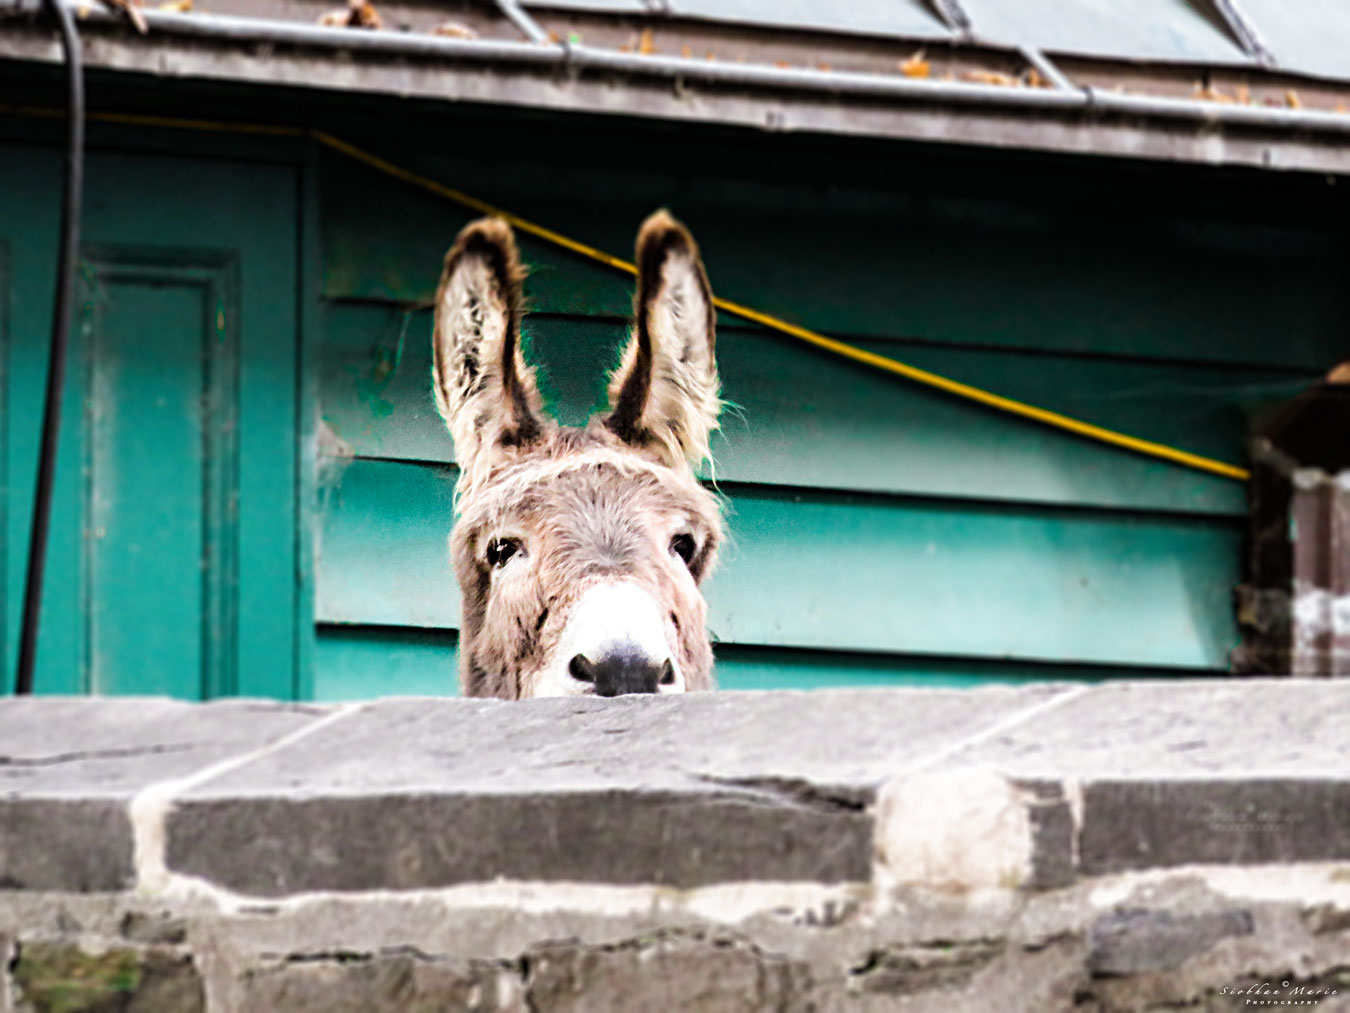 Nosey Donkey by siobhan@ www.siobhanmariephotography.com